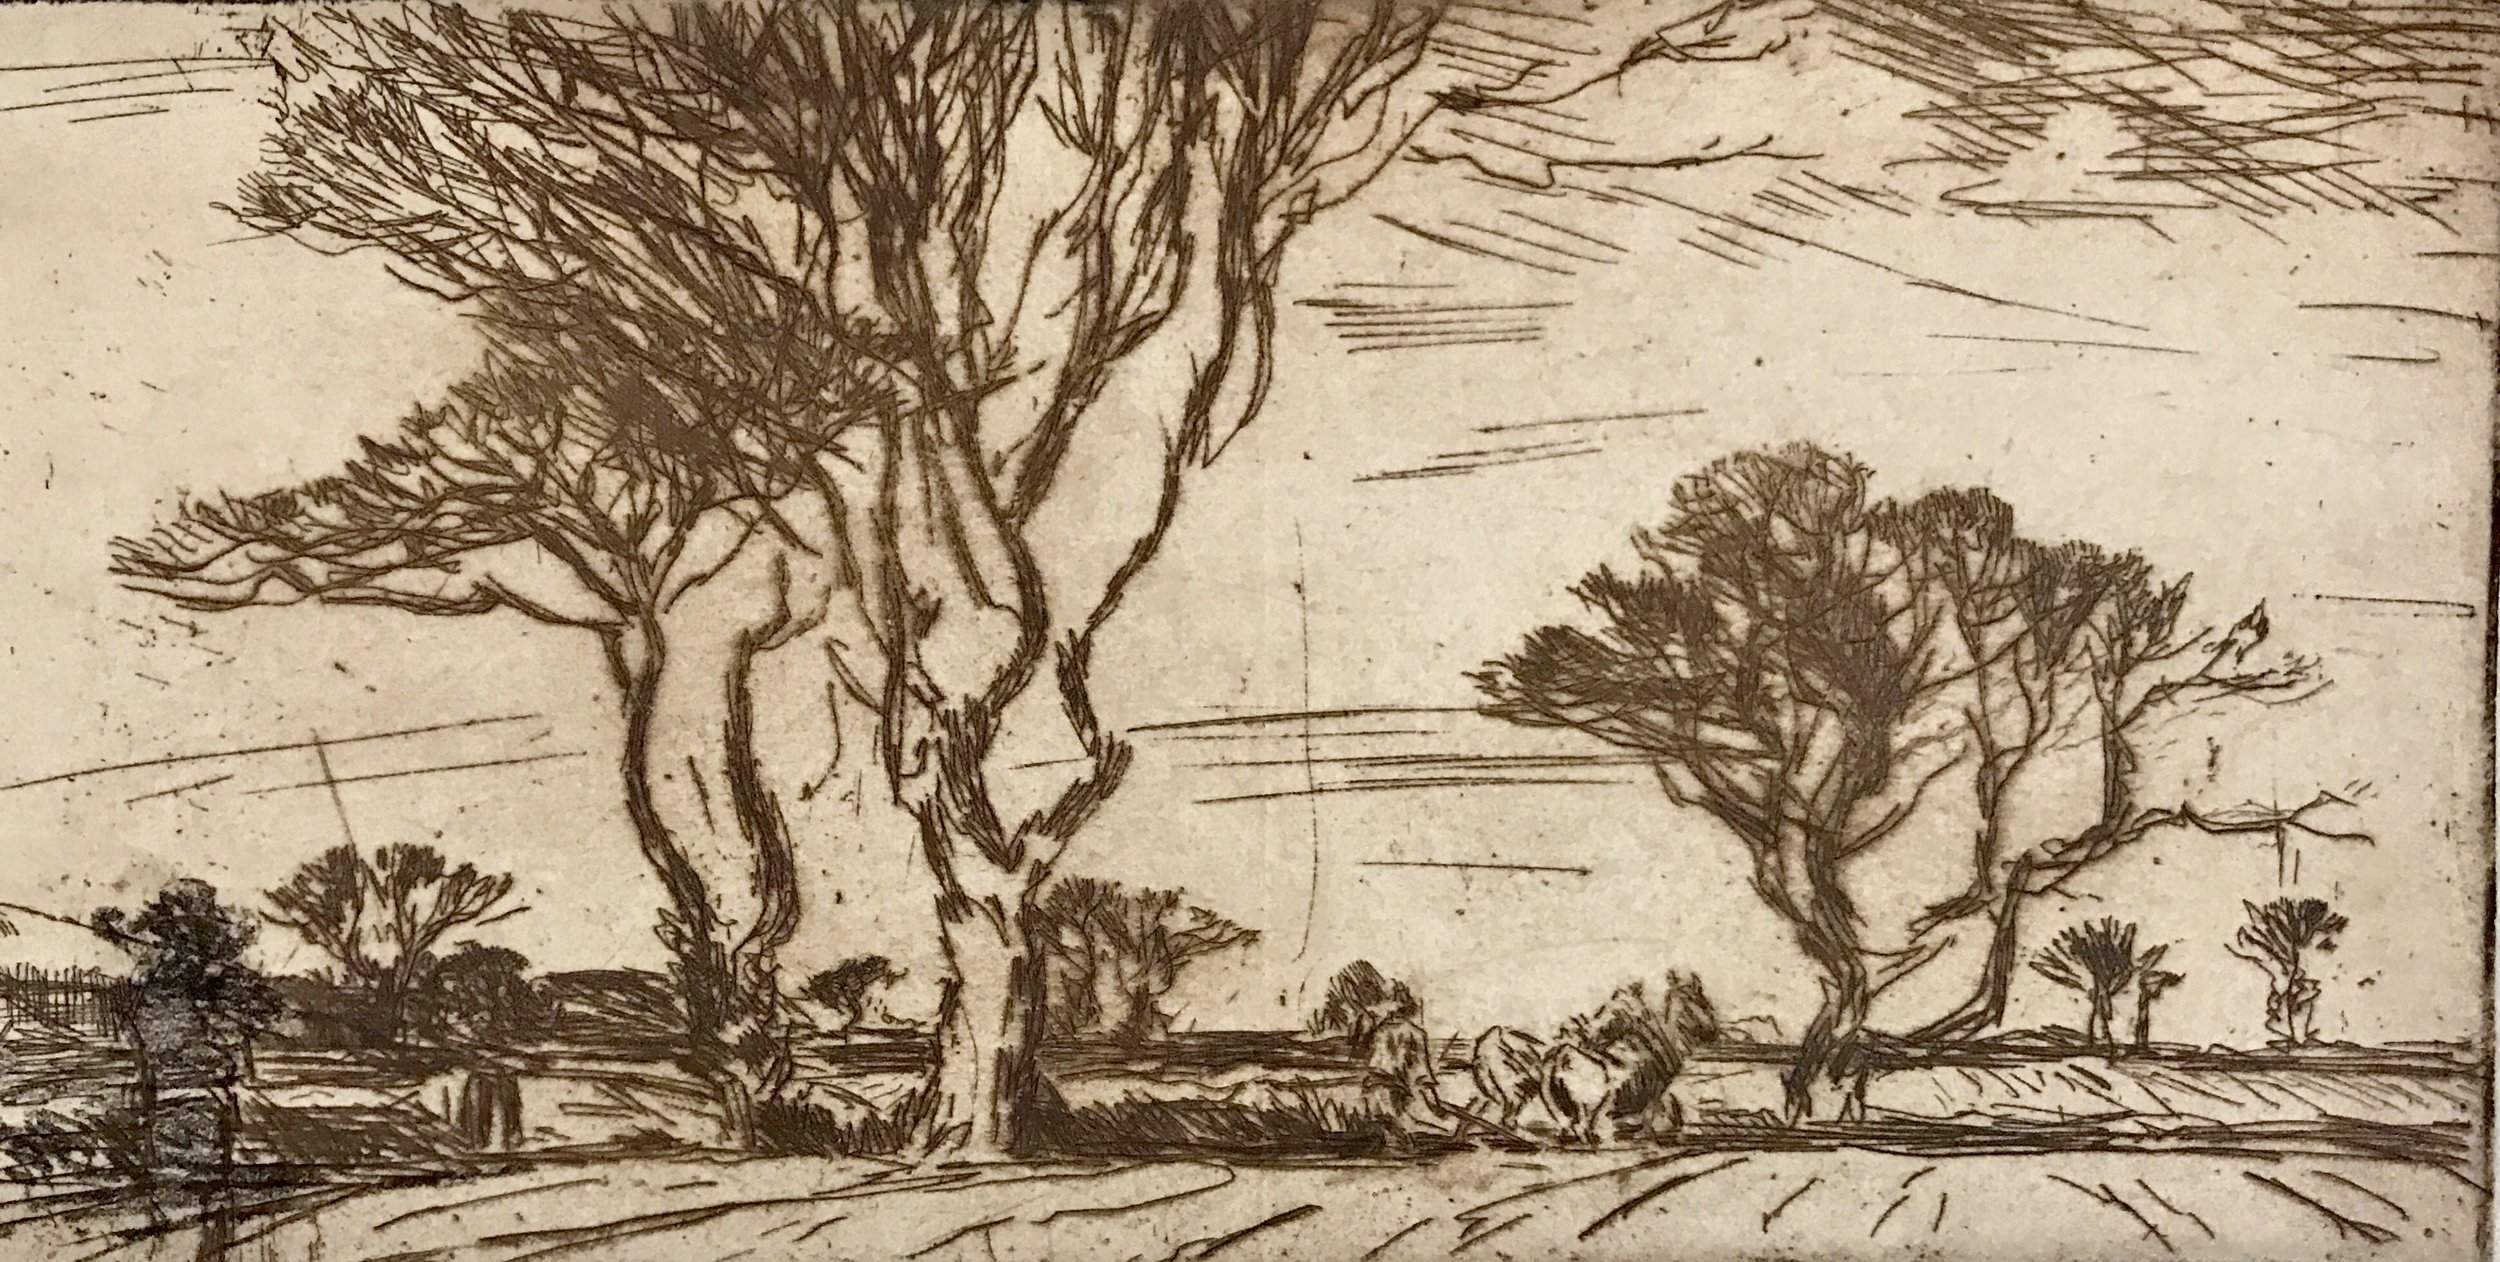 Harry Becker .  Distant Plough Team in Tree Lined Landscape , c.1910s. Etching on paper.